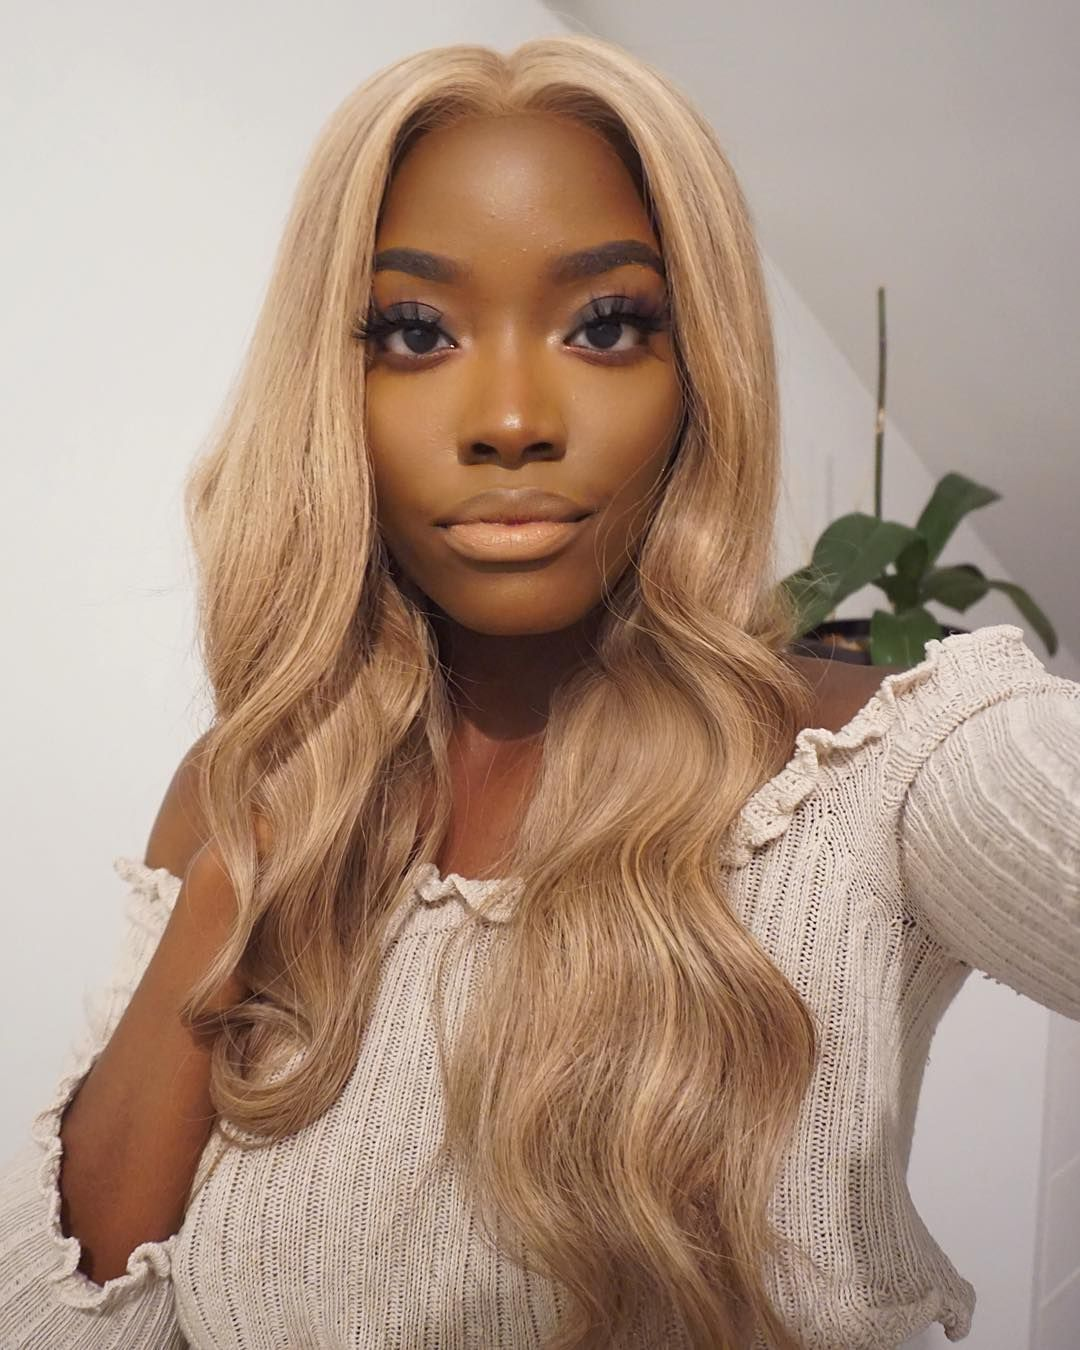 Blonde Wigs For Black Women Lace Front Strawberry Blond Hair Color 360 613 Frontal 613 Peruvian Hair Blonde Deep Wave